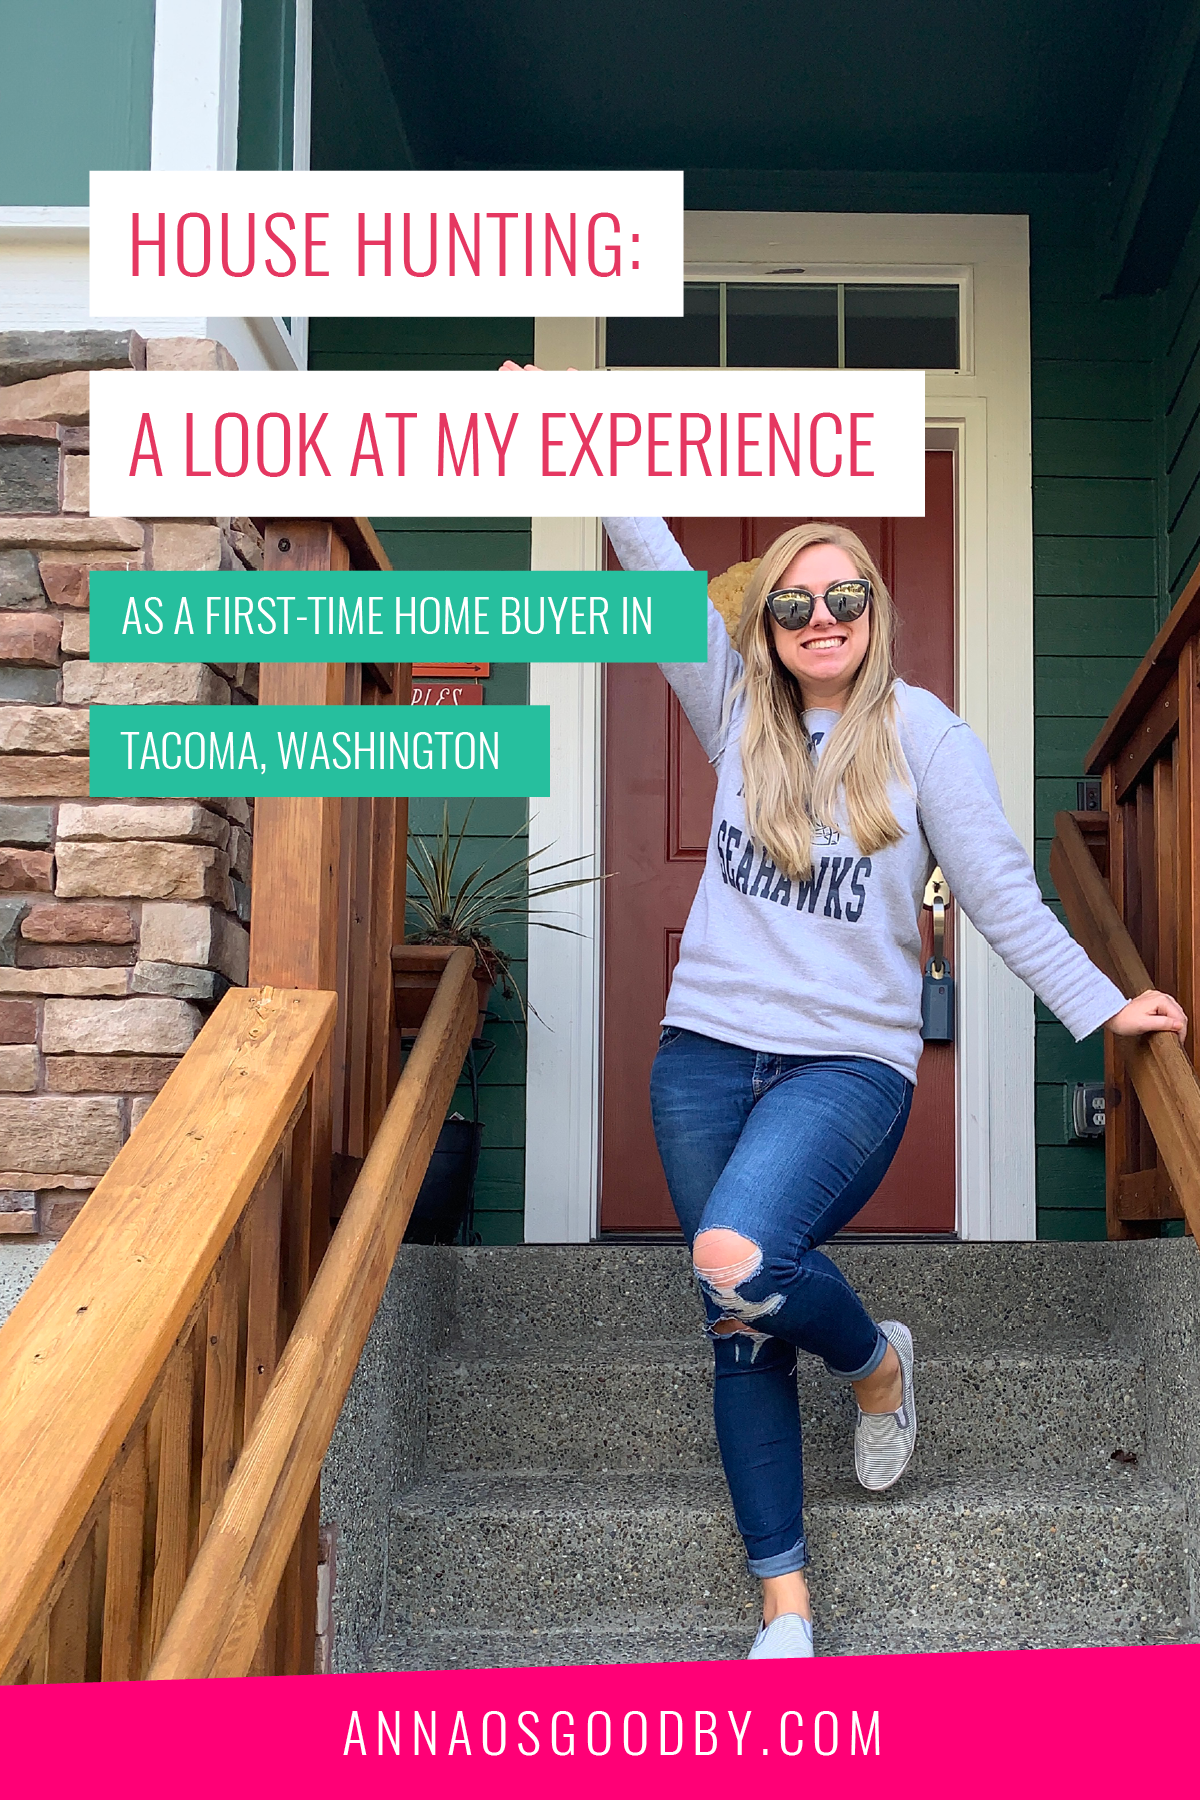 House Hunting A Look At My Experience As A First Time Home Buyer In Tacoma Washington Anna Osgoodby Life Biz Seattle Lifestyle Blogger Goals Coach